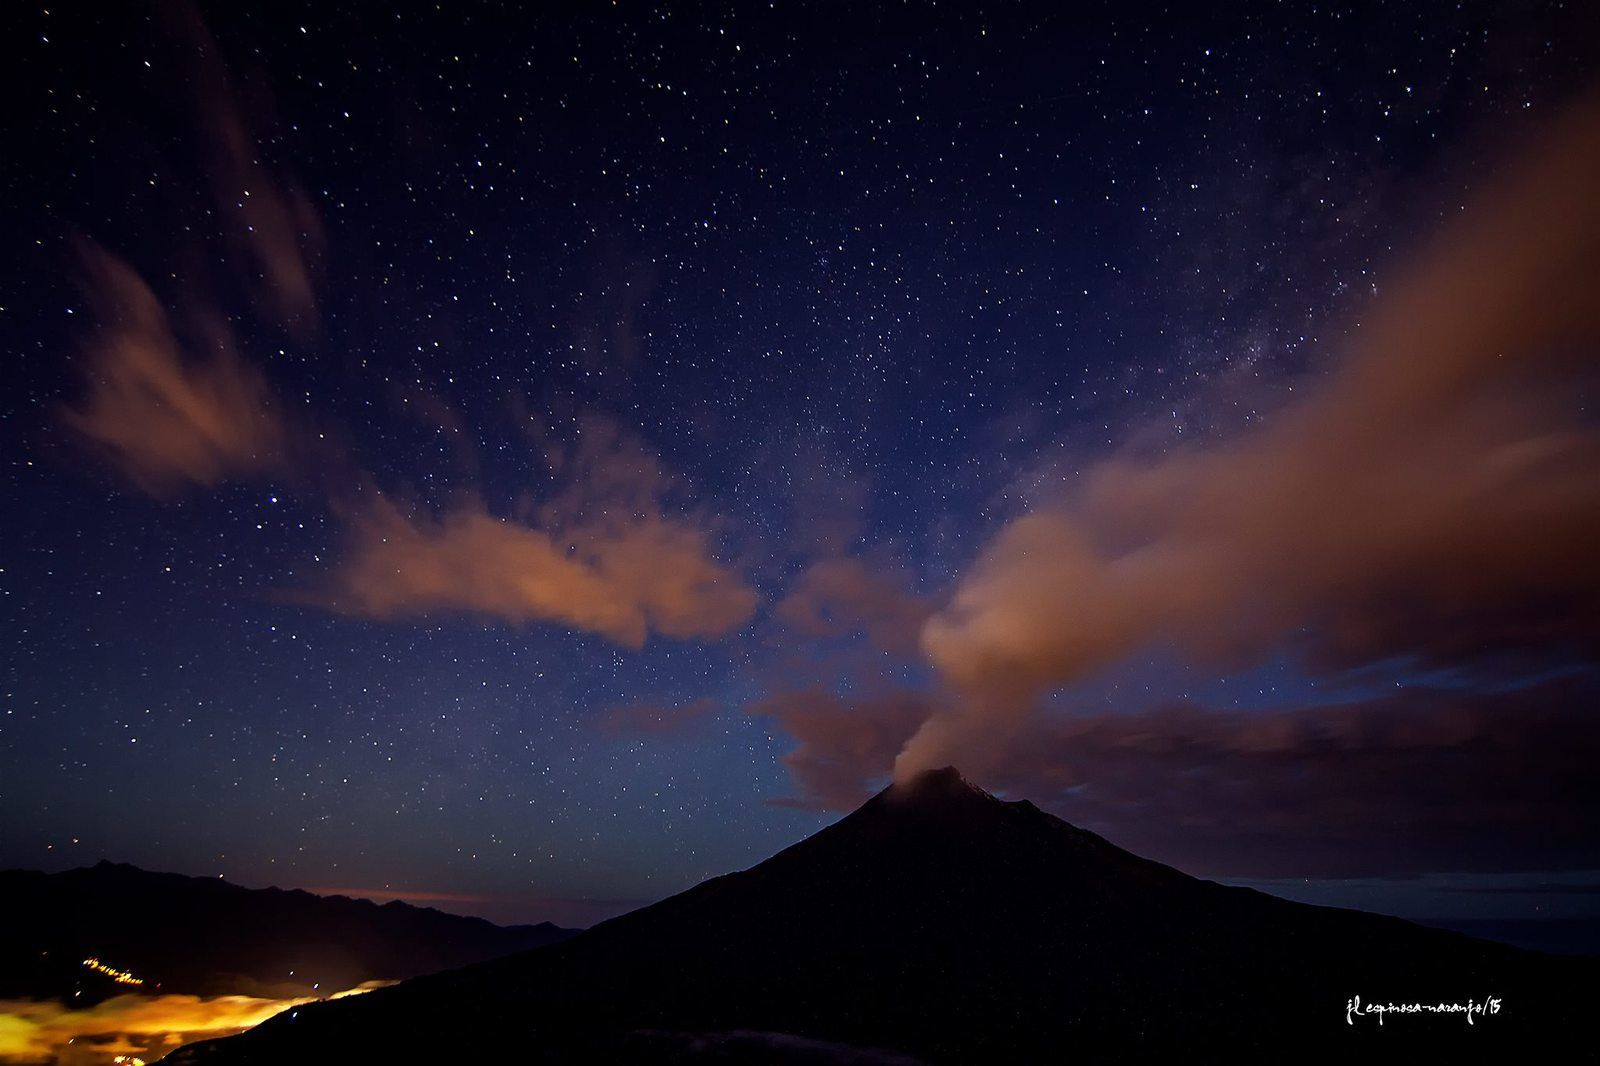 The Tungurahua 14/07/2015 - photo Jose Luis Espinosa-Naranjo